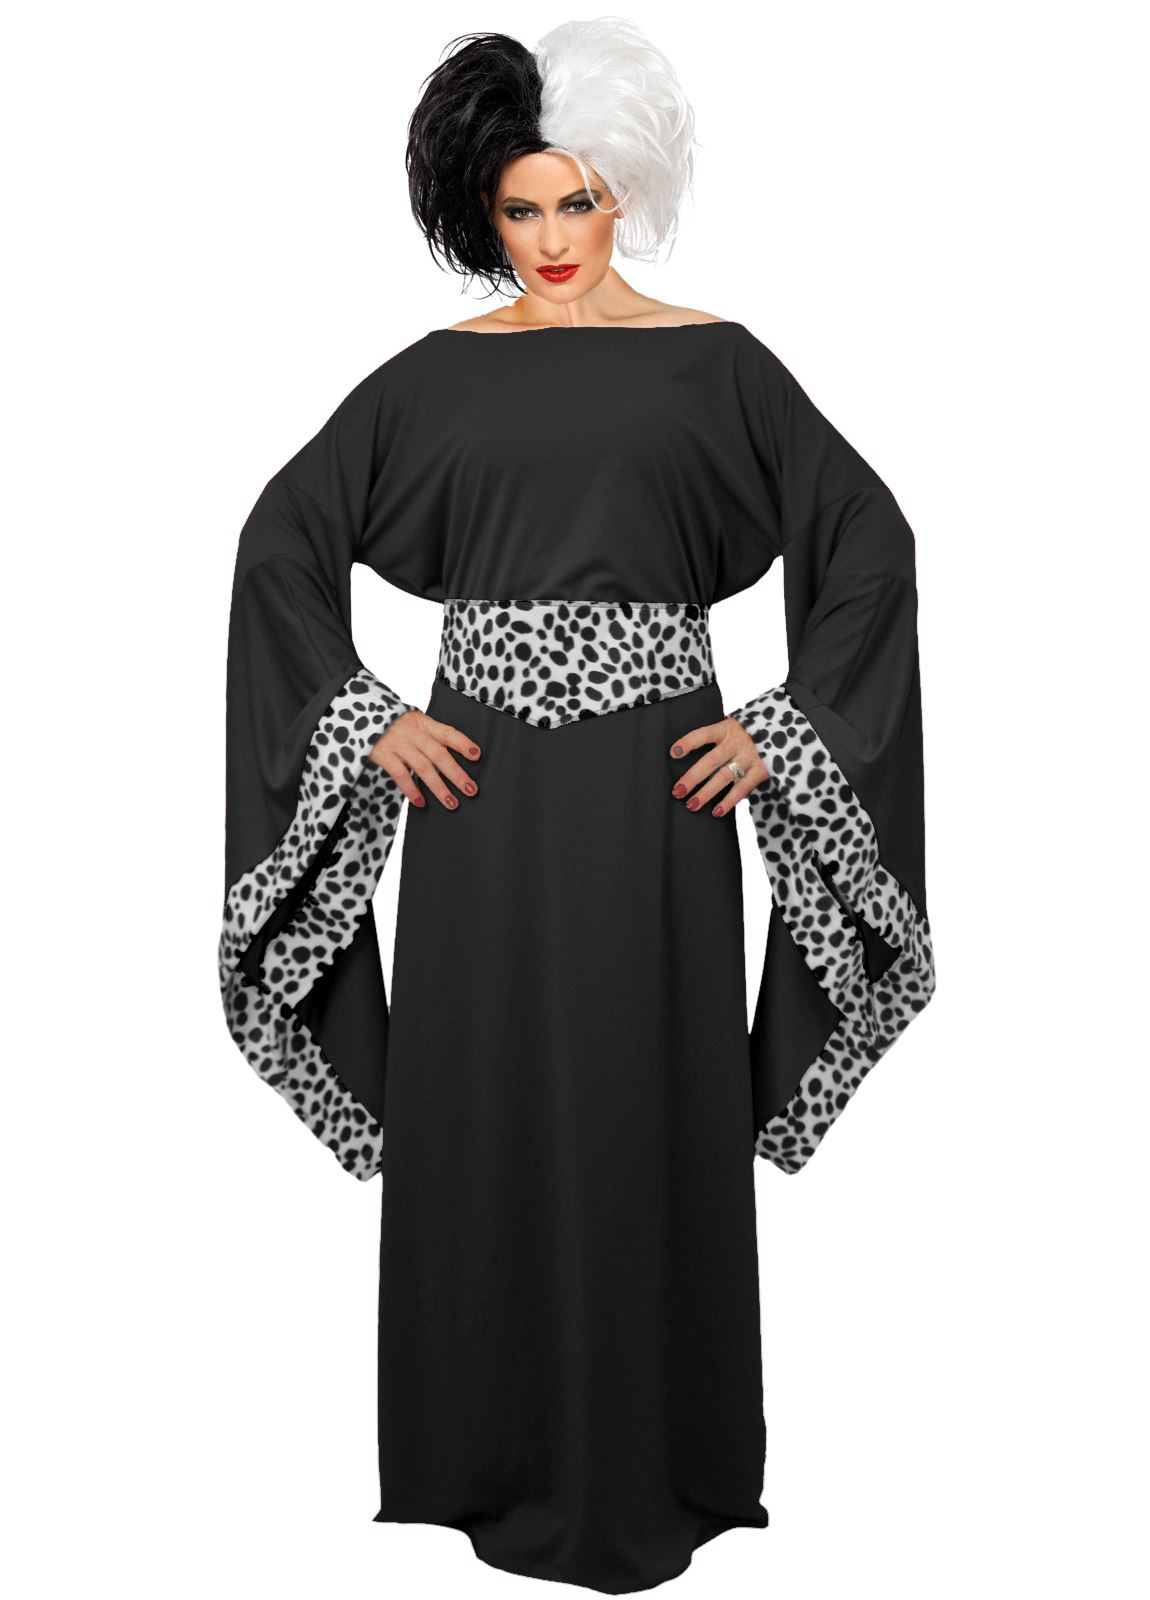 ladies black cruella de ville costume 101 dalmatians halloween fancy dress ebay. Black Bedroom Furniture Sets. Home Design Ideas